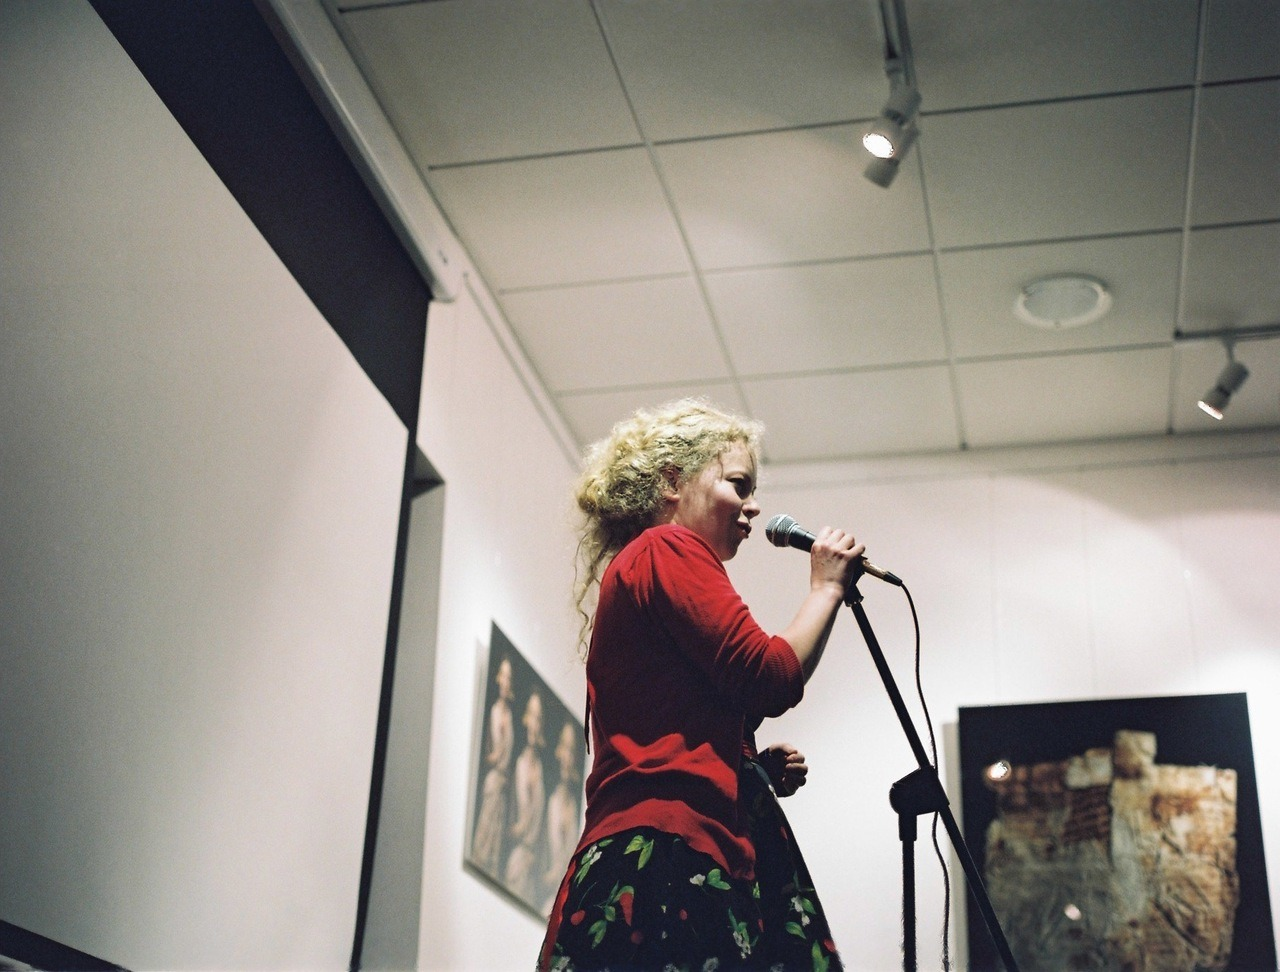 Rachel Rose Reid, Poetry Loves Company, Jan 2012.